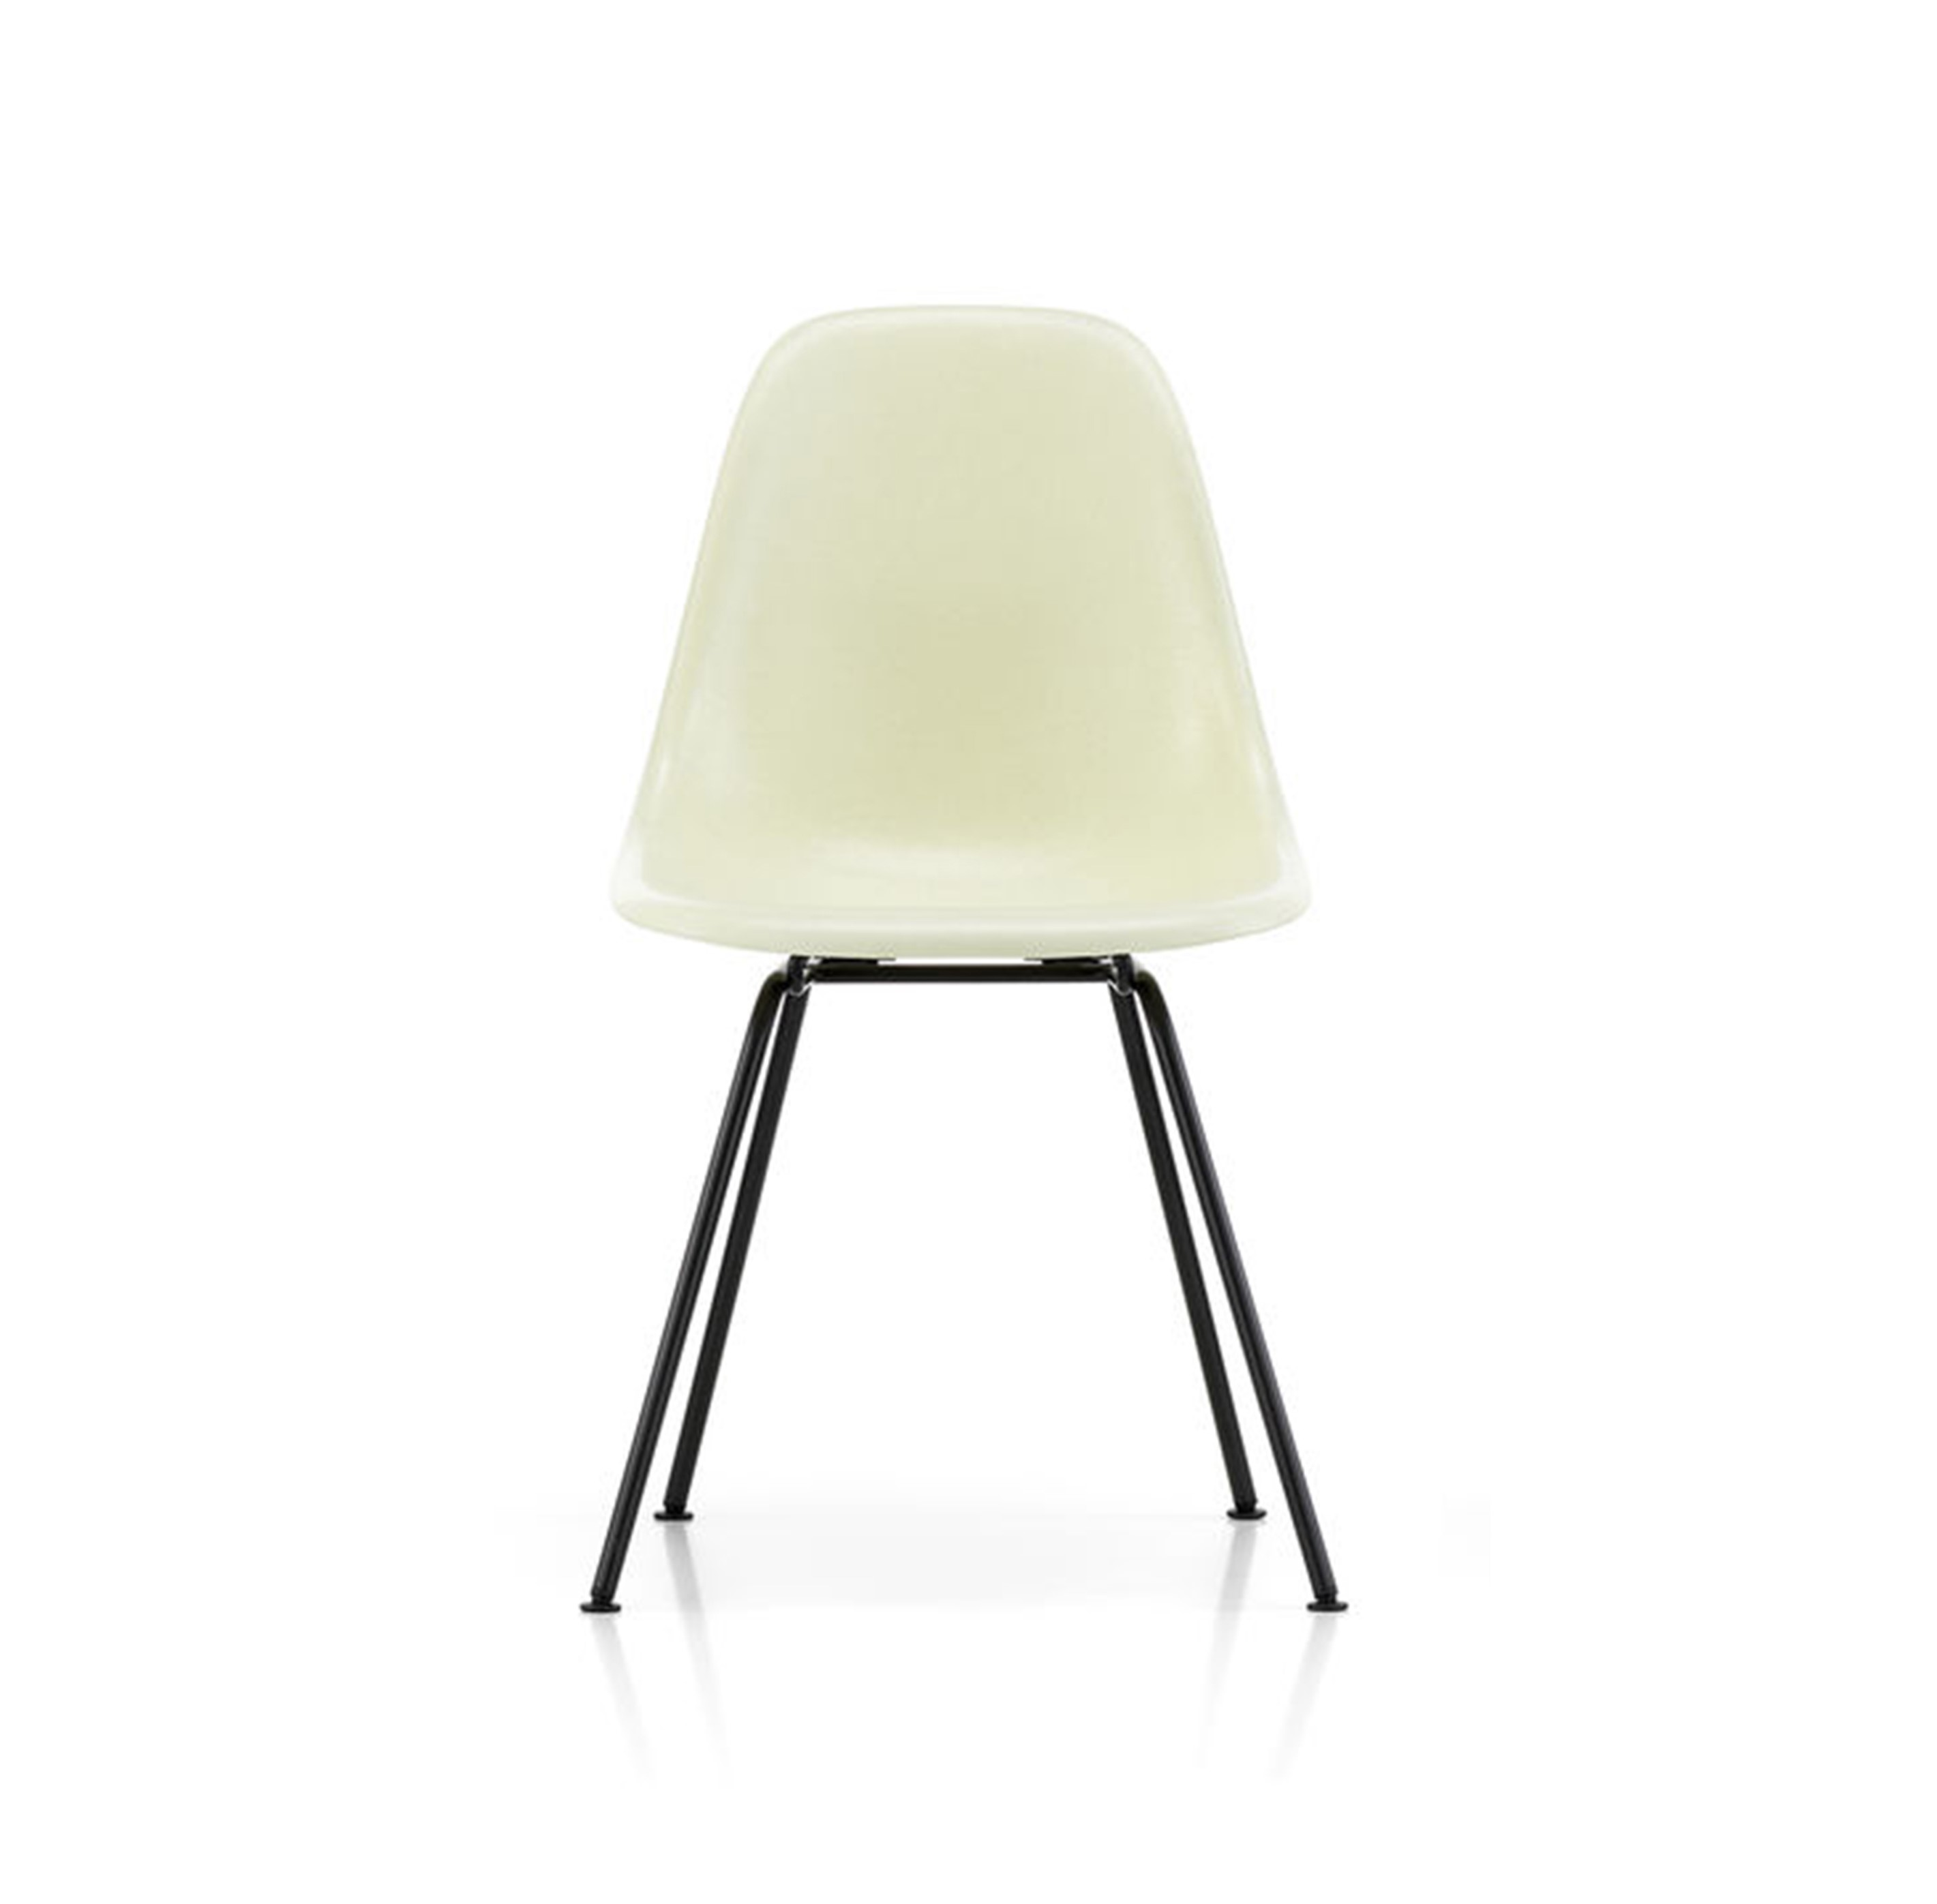 Vitra Eames Fiberglass Side Chair DXS